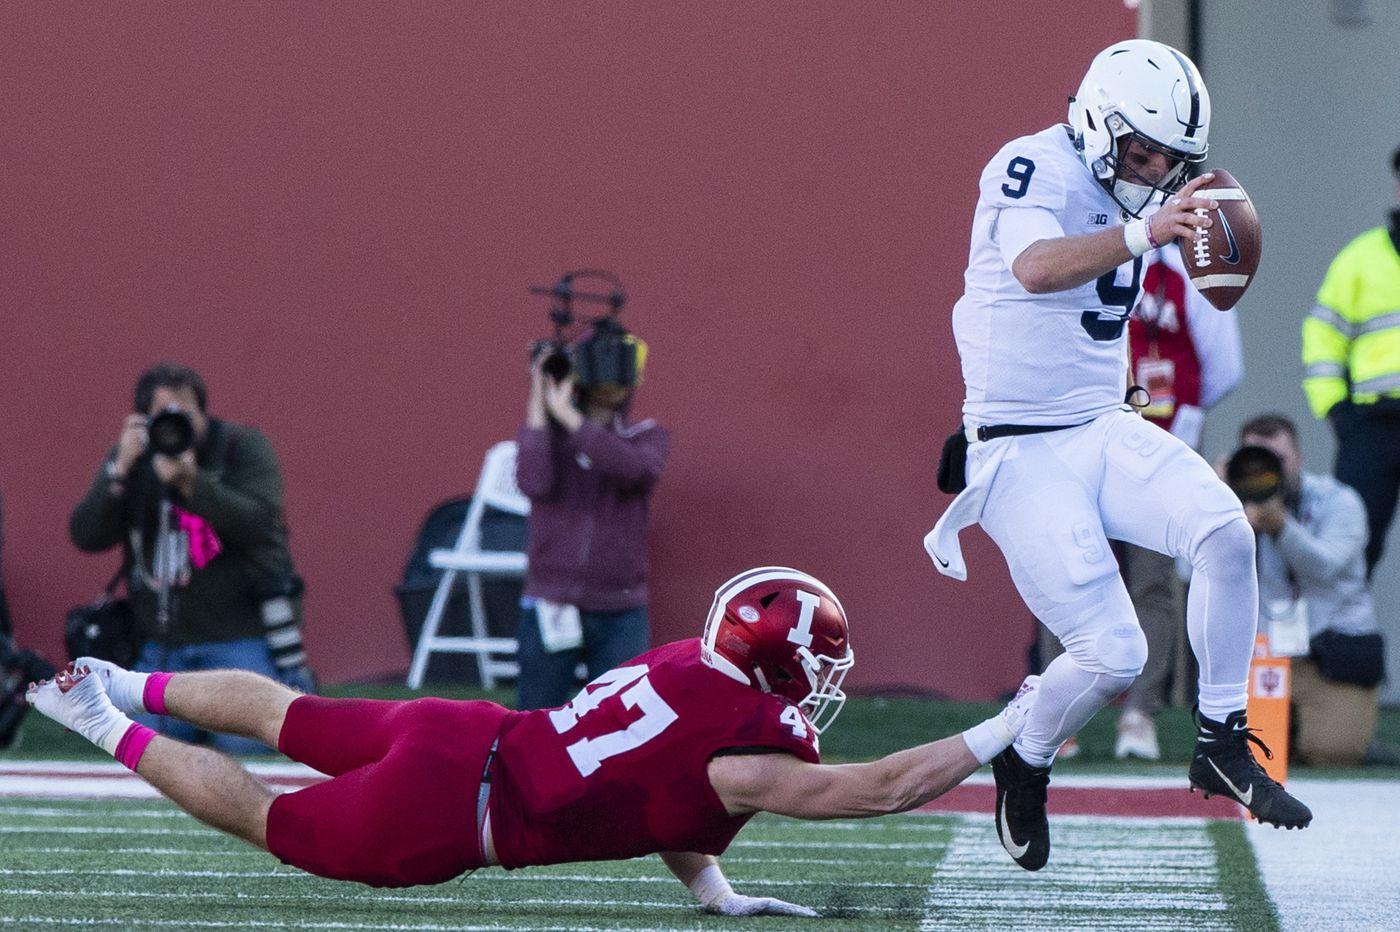 Trace McSorley says he's not carrying too much of the offensive load for Penn State